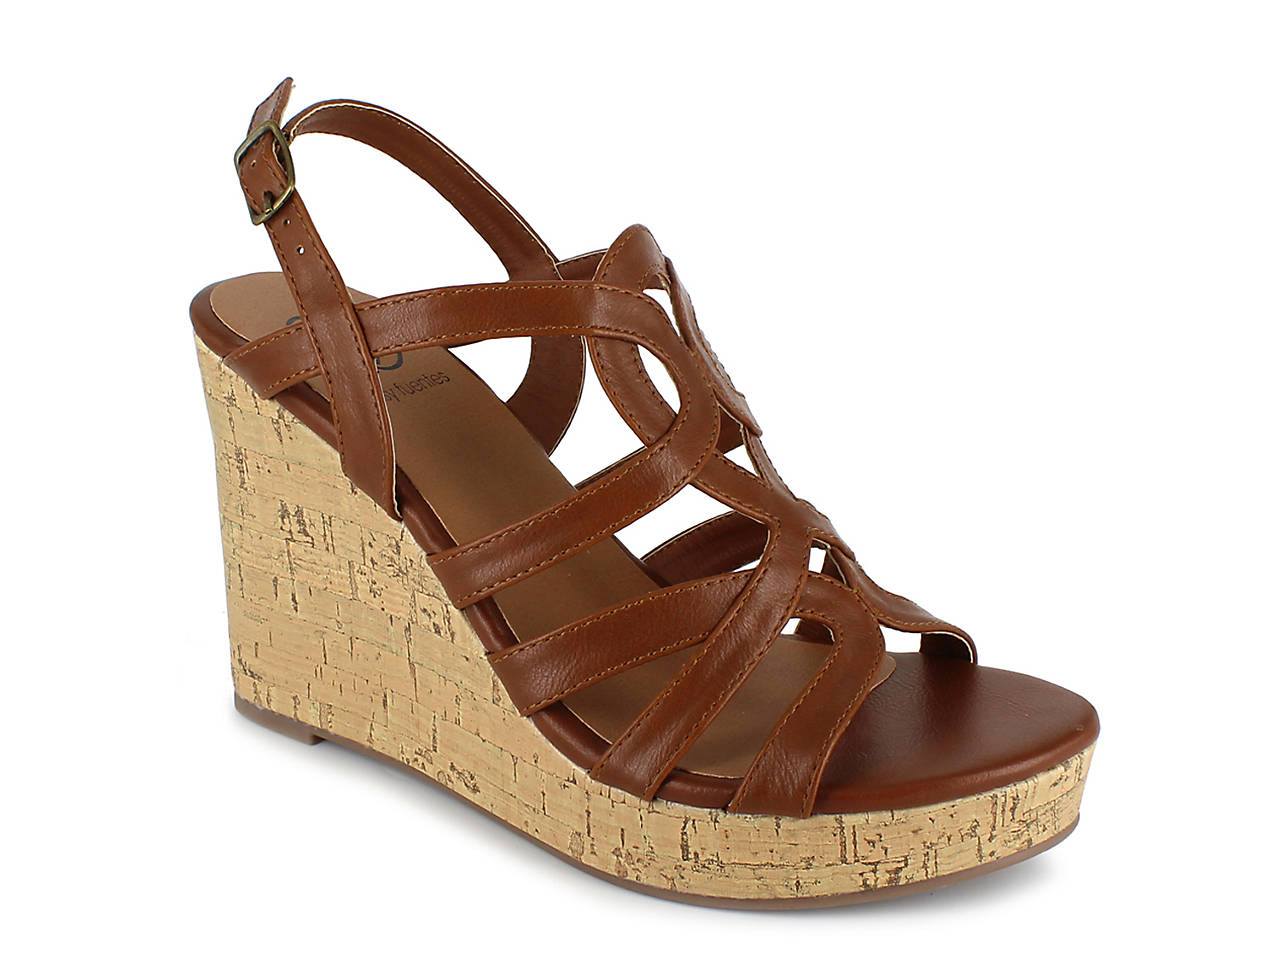 22f7f886004 Daisy Fuentes Susie Wedge Sandal Women s Shoes